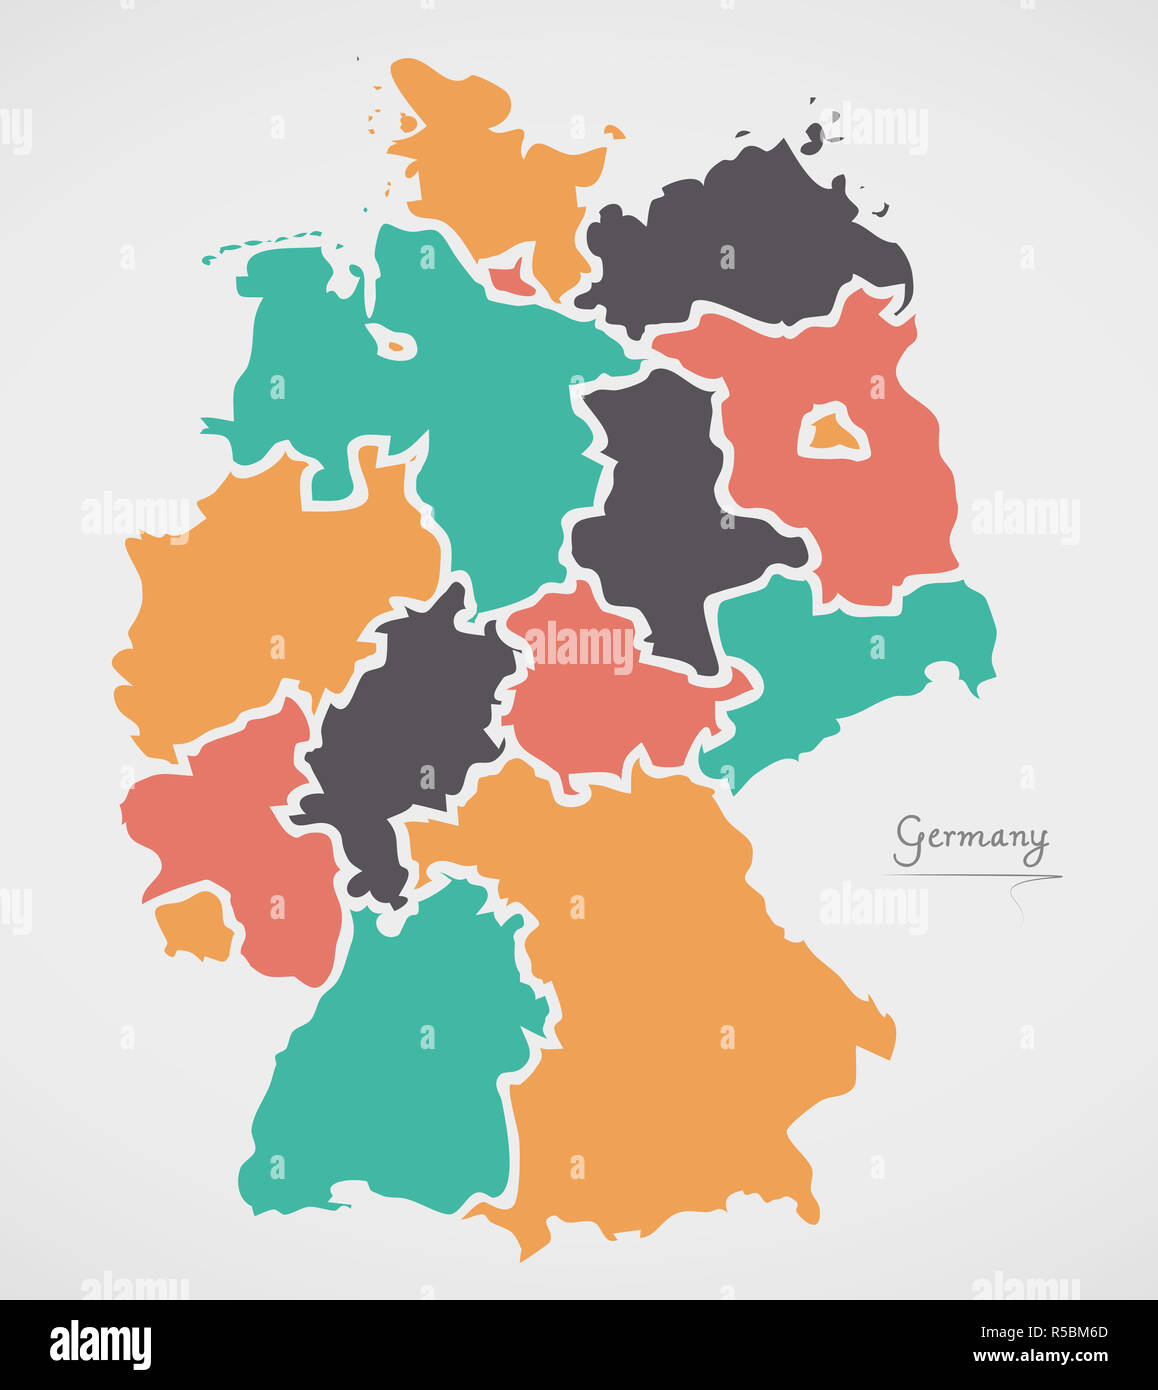 Germany Map States.Germany Map With States And Modern Round Shapes Stock Photo